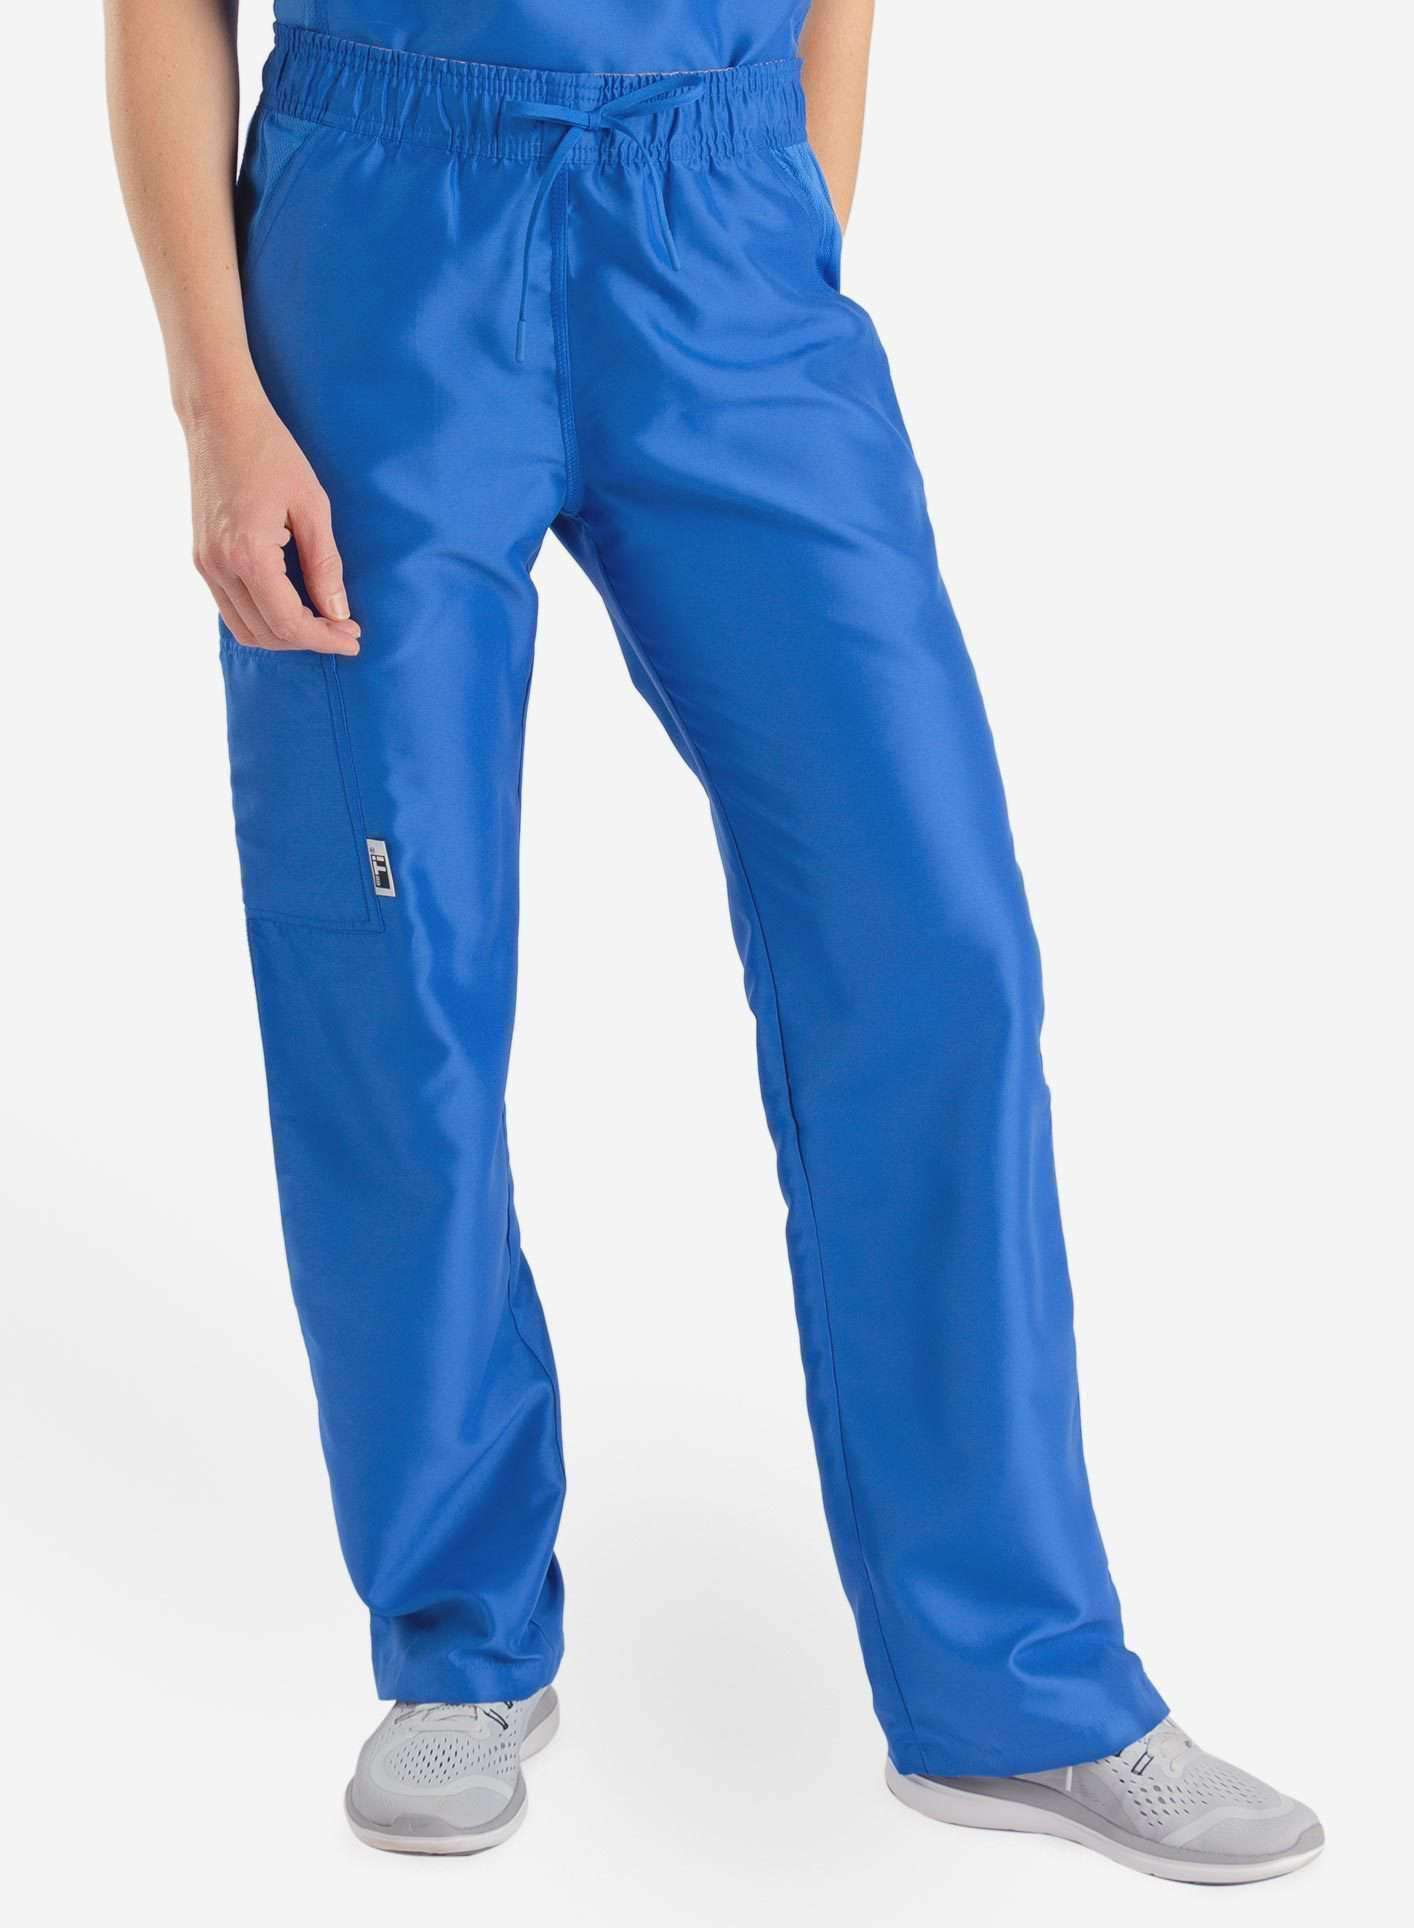 womens Elements cargo pocket straight leg scrub pants royal blue front